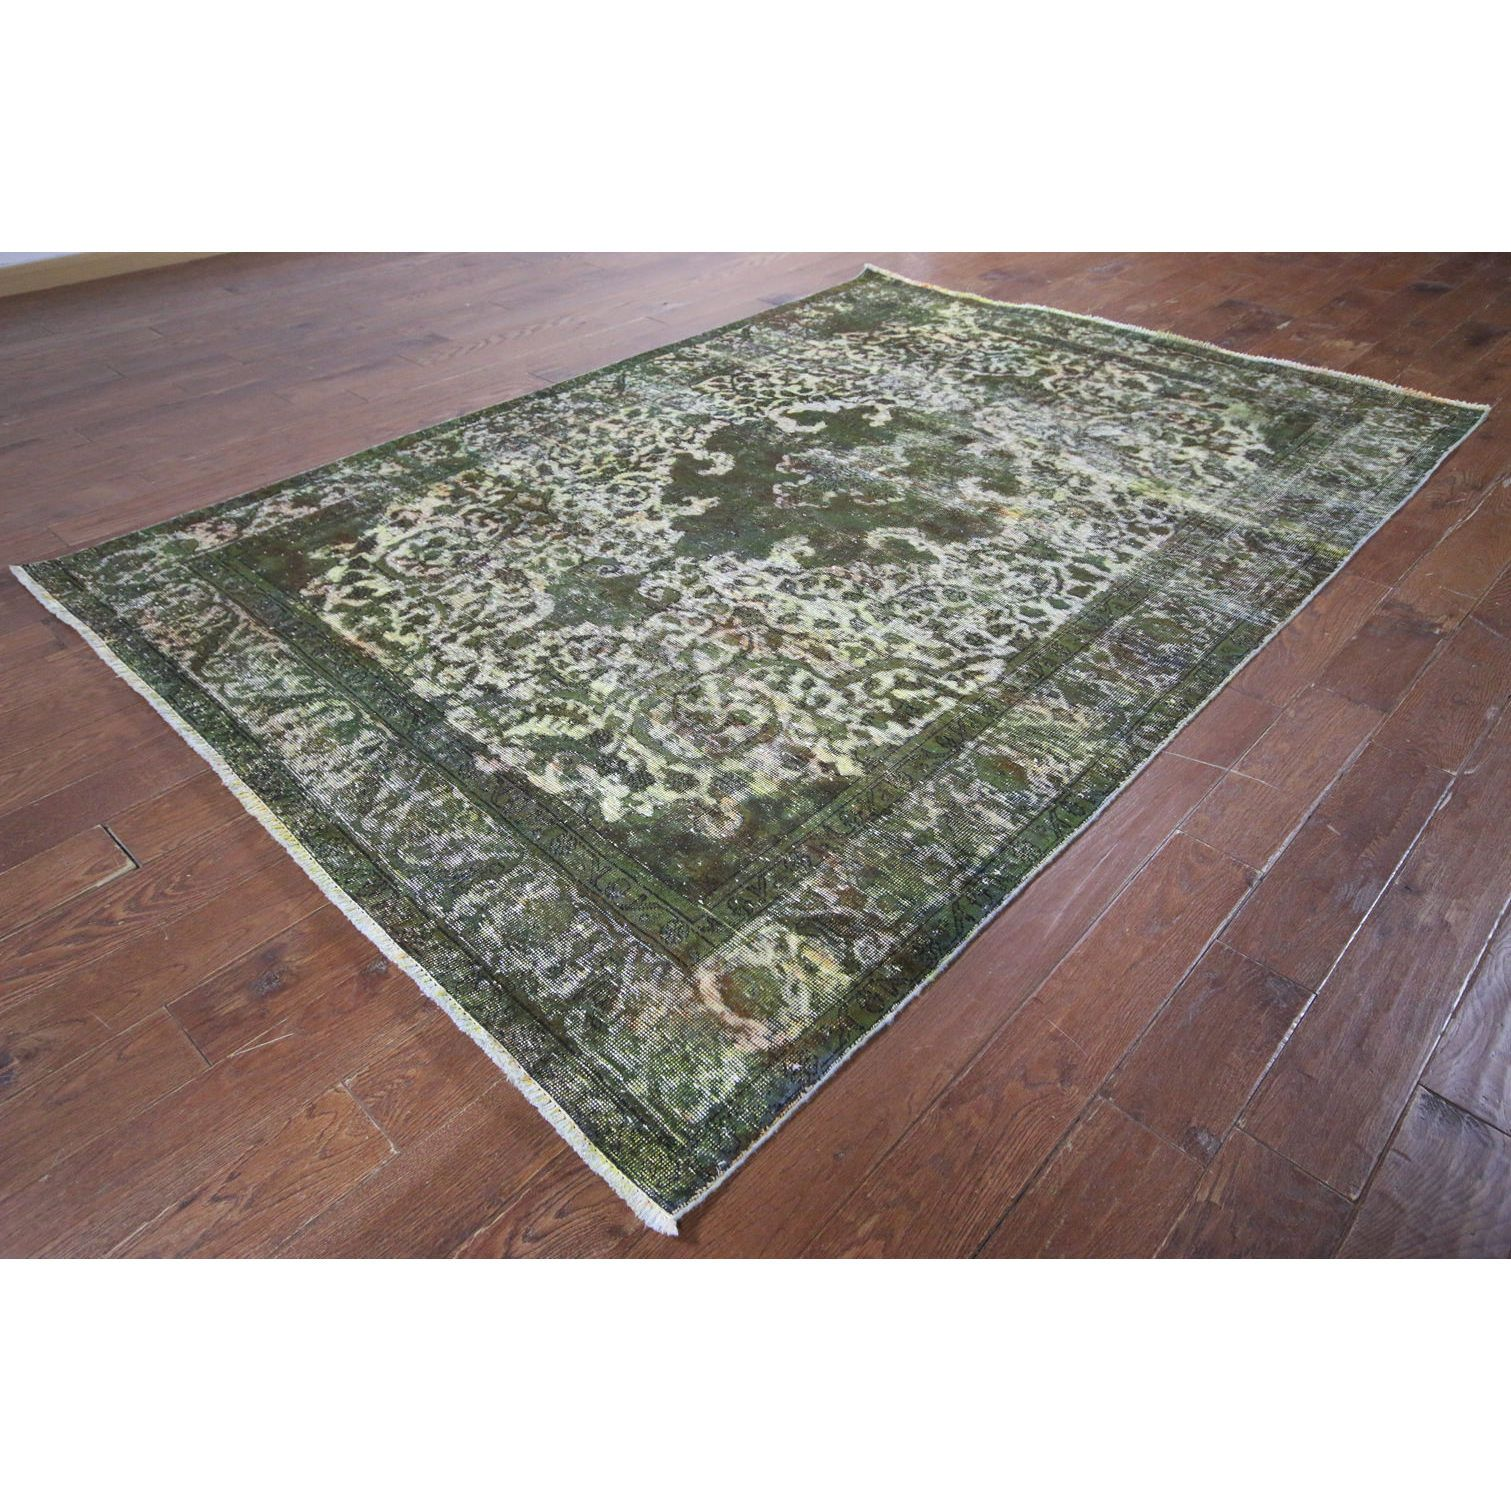 "Manhattan Oriental Over-dyed Green Hand-knotted Wool Rug (6'5 x 9'4) (Color: Green Size: 6' 5"" X 9' 4""), Size 6' x 9'"